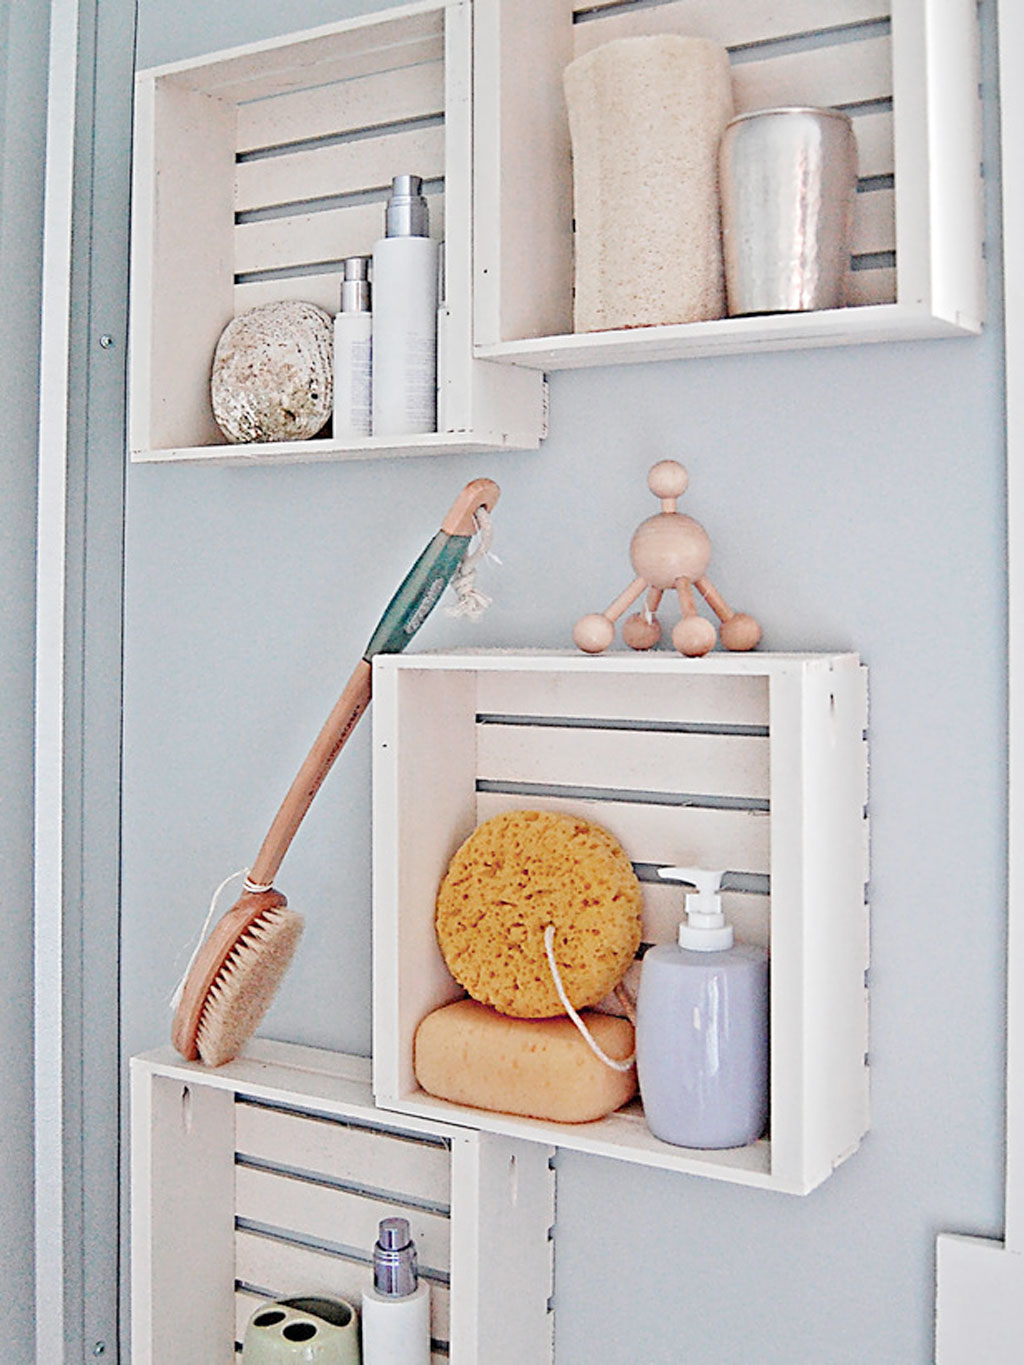 Towel Shelves In The Bathroom From Messy To Stylish HomesFeed - White bathroom towel shelf for small bathroom ideas